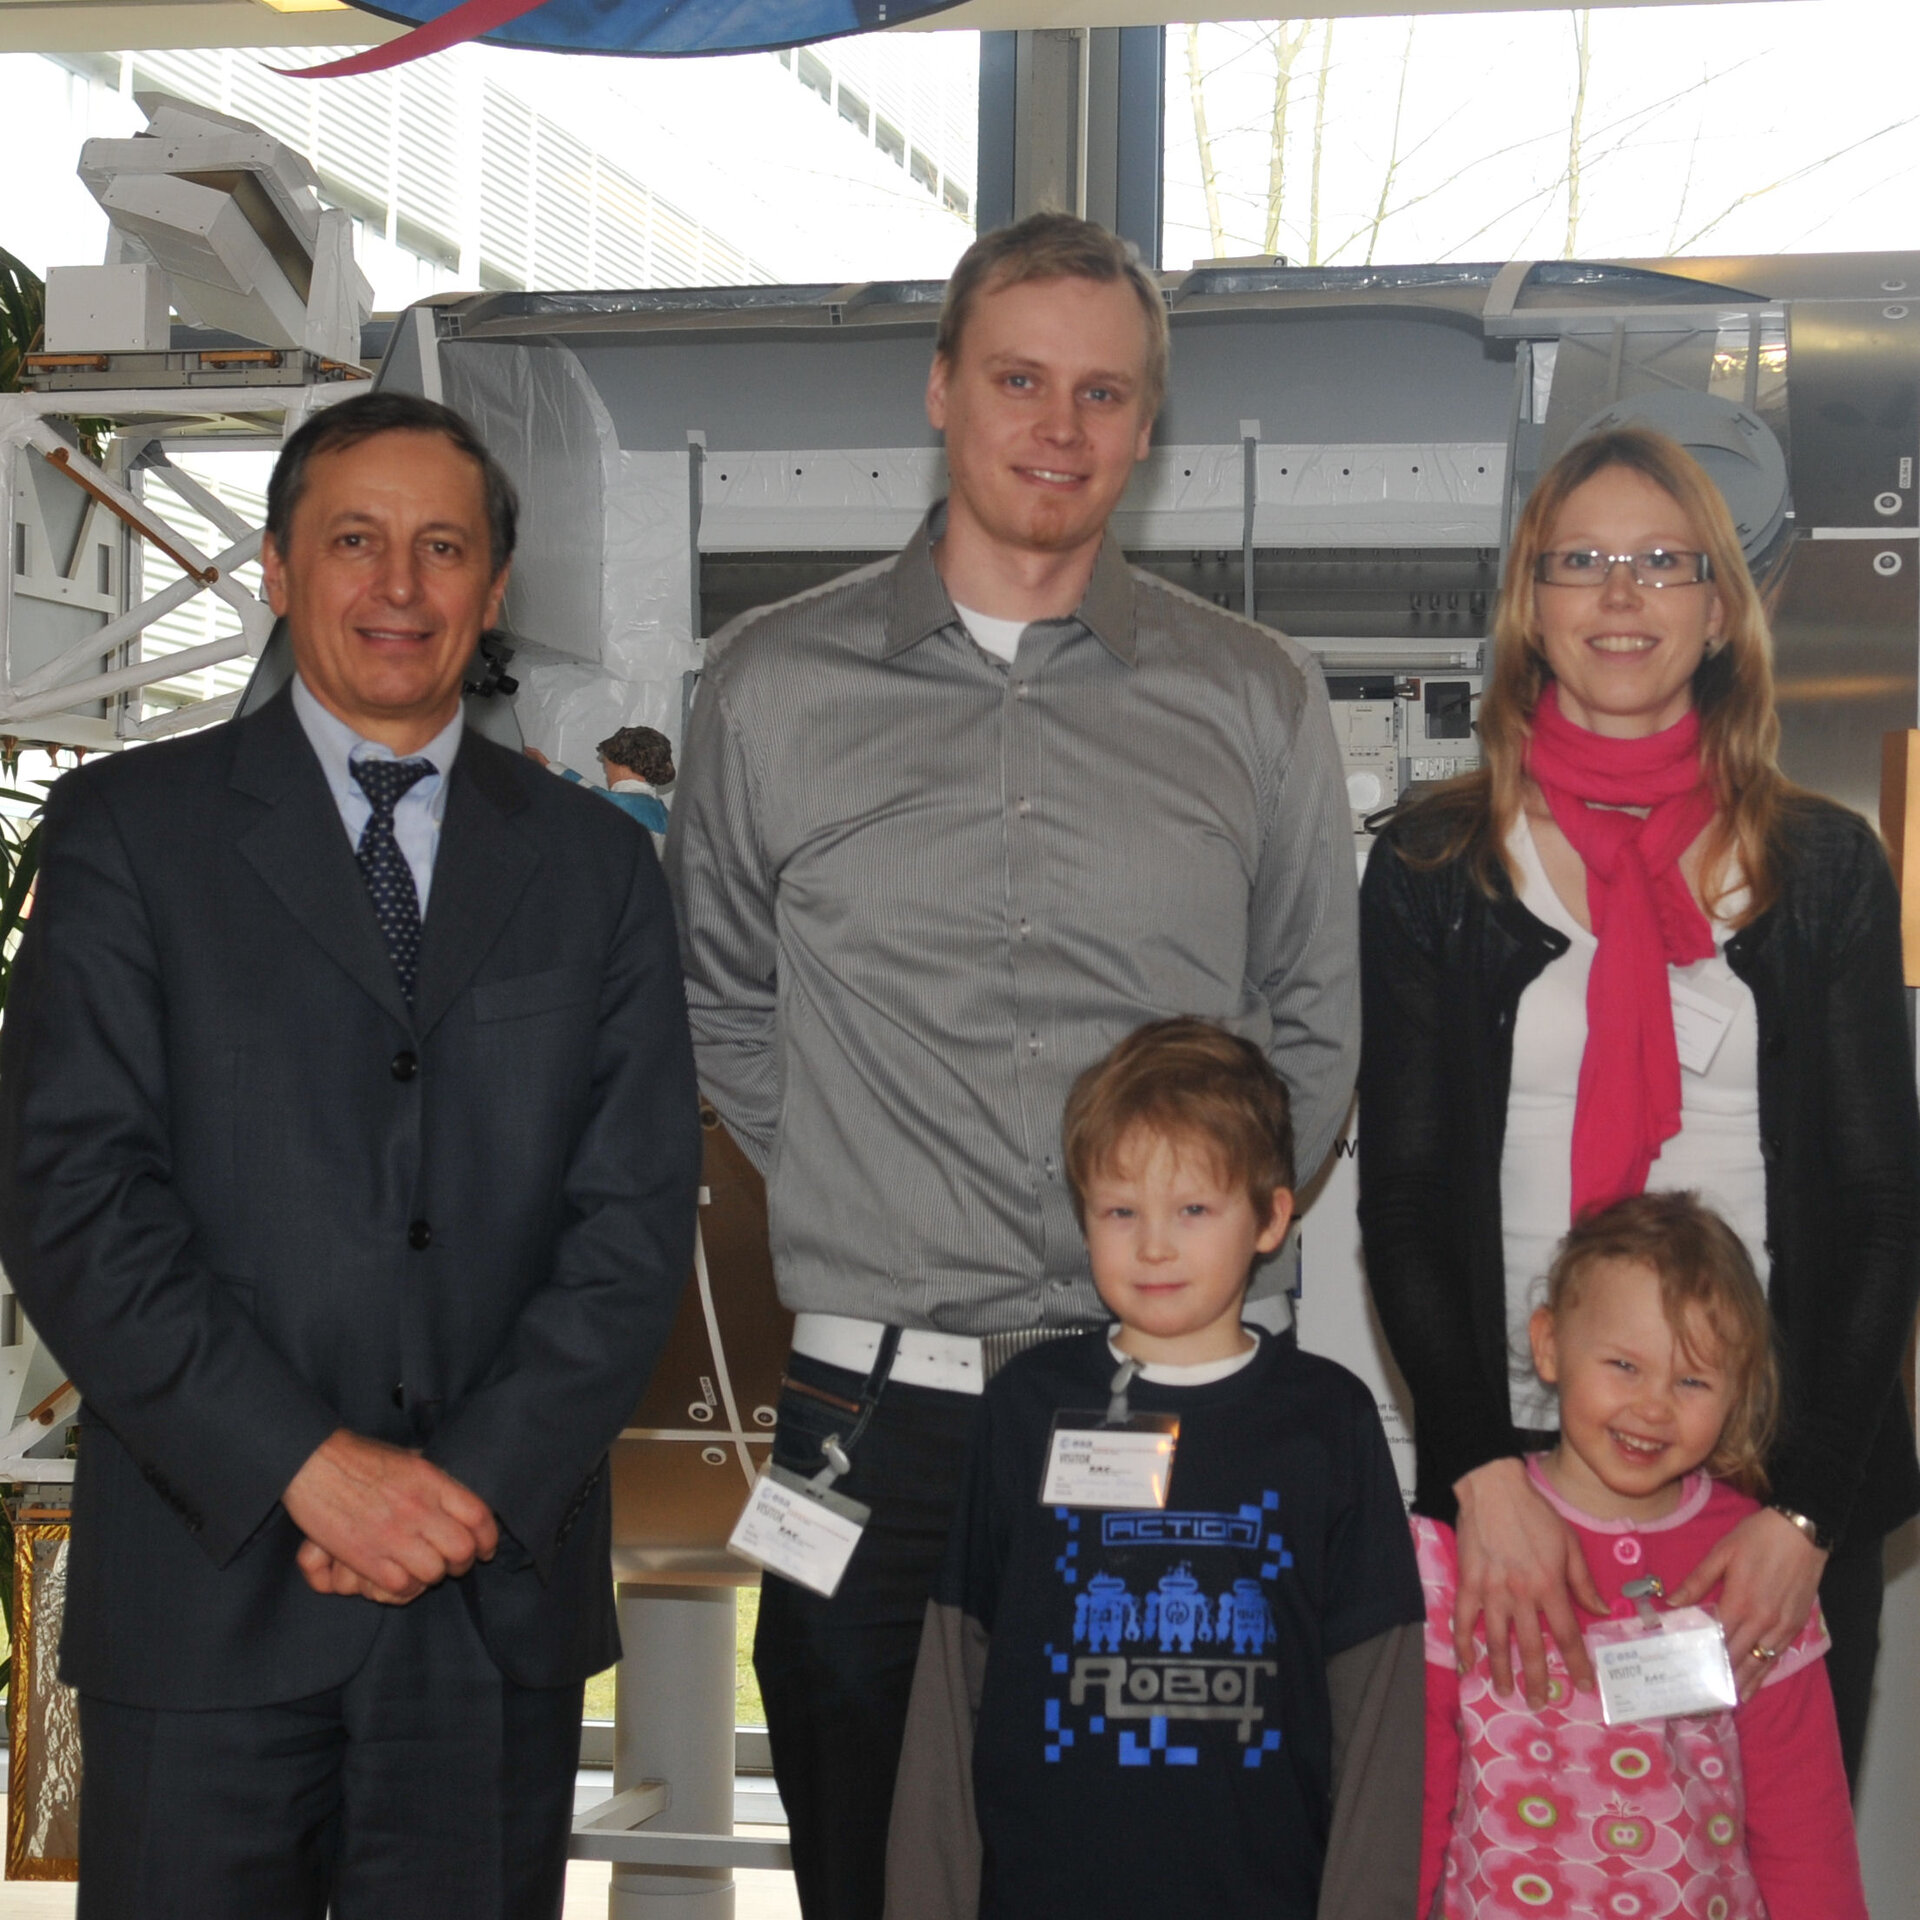 Esa Alanen with his family and Michel Togini